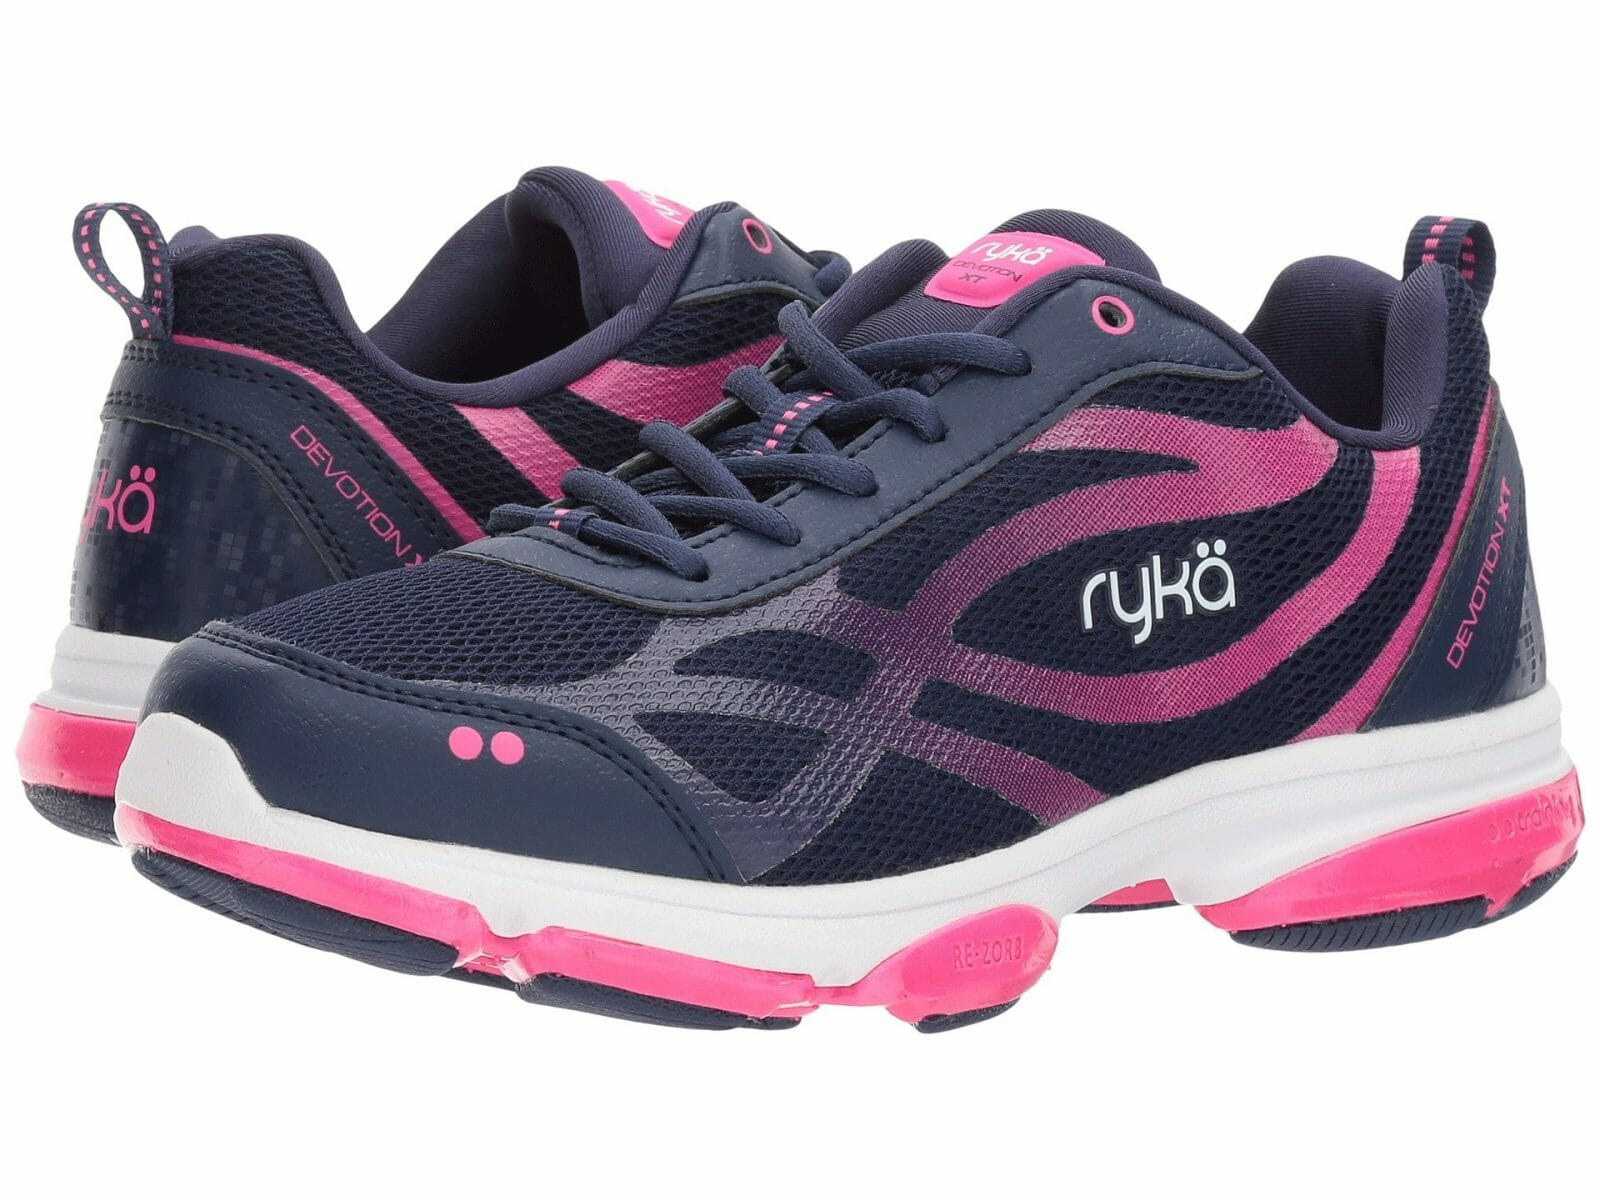 3927848122e Ryka  The brand made just for women